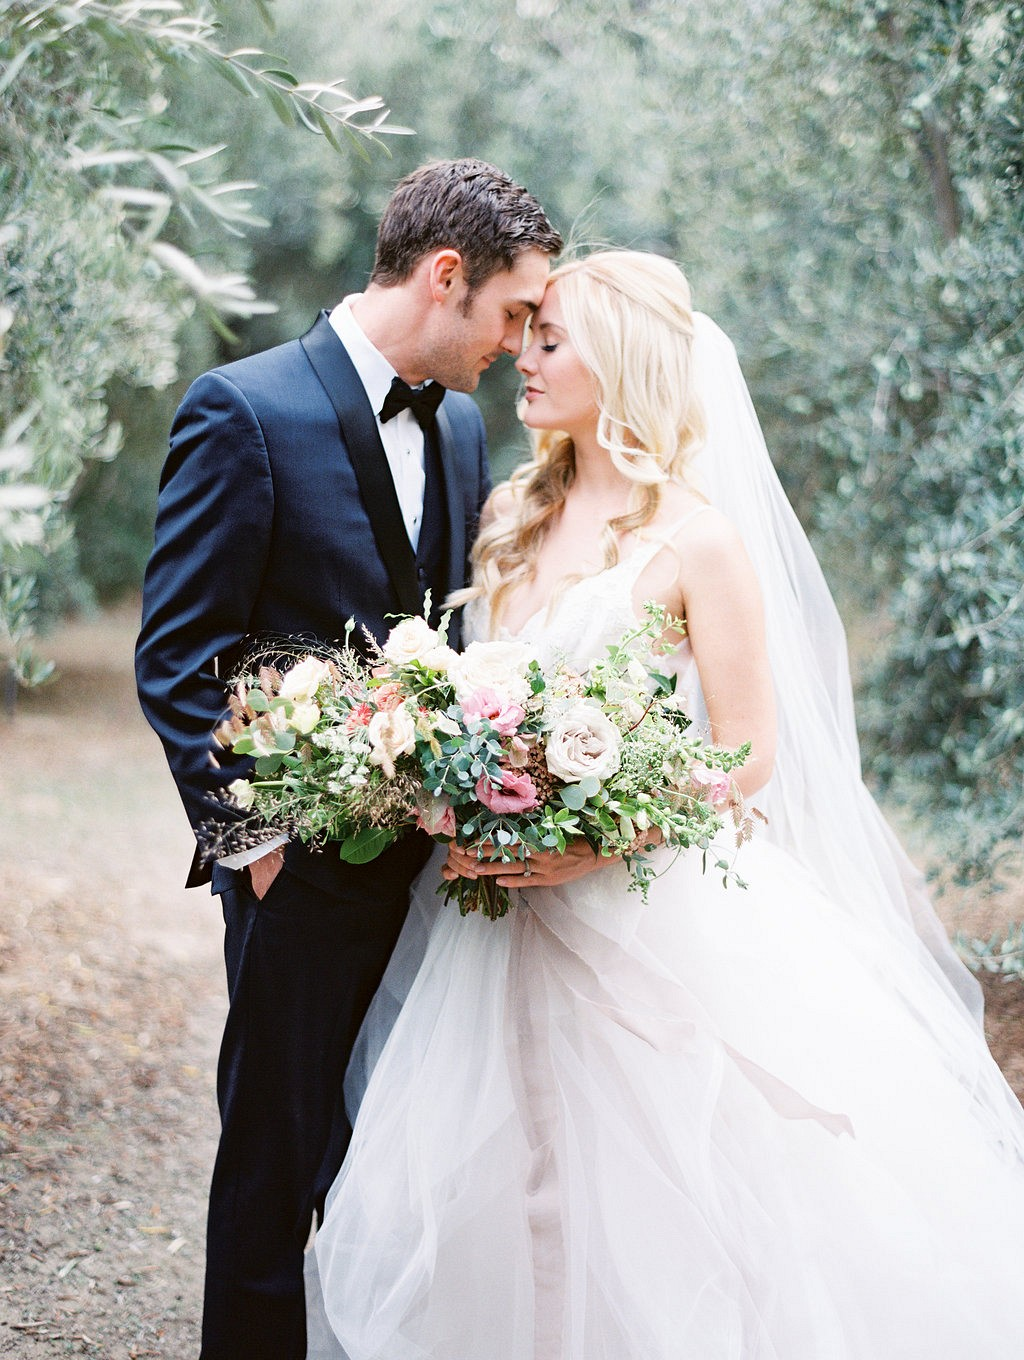 Intimate and Romantic Olive Grove Wedding Ideas